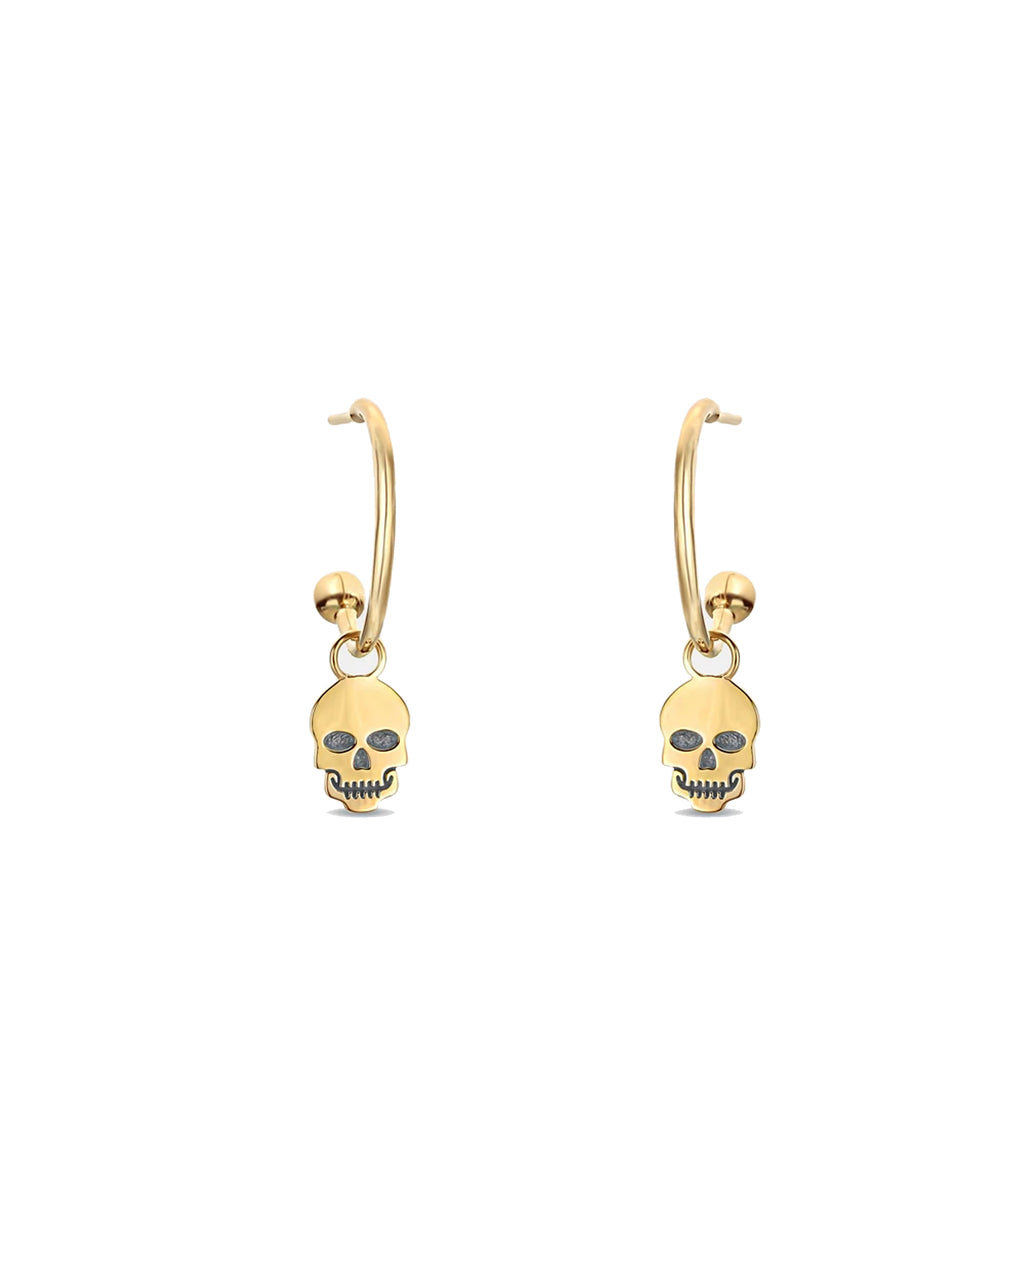 NME1015 - 14K SKULL C-HOOP EARRINGS - accessories - fine jewelry - These 14-karat solid yellow gold earrings feature skulls, designed with cubic zirconia, and an open c-hoop.